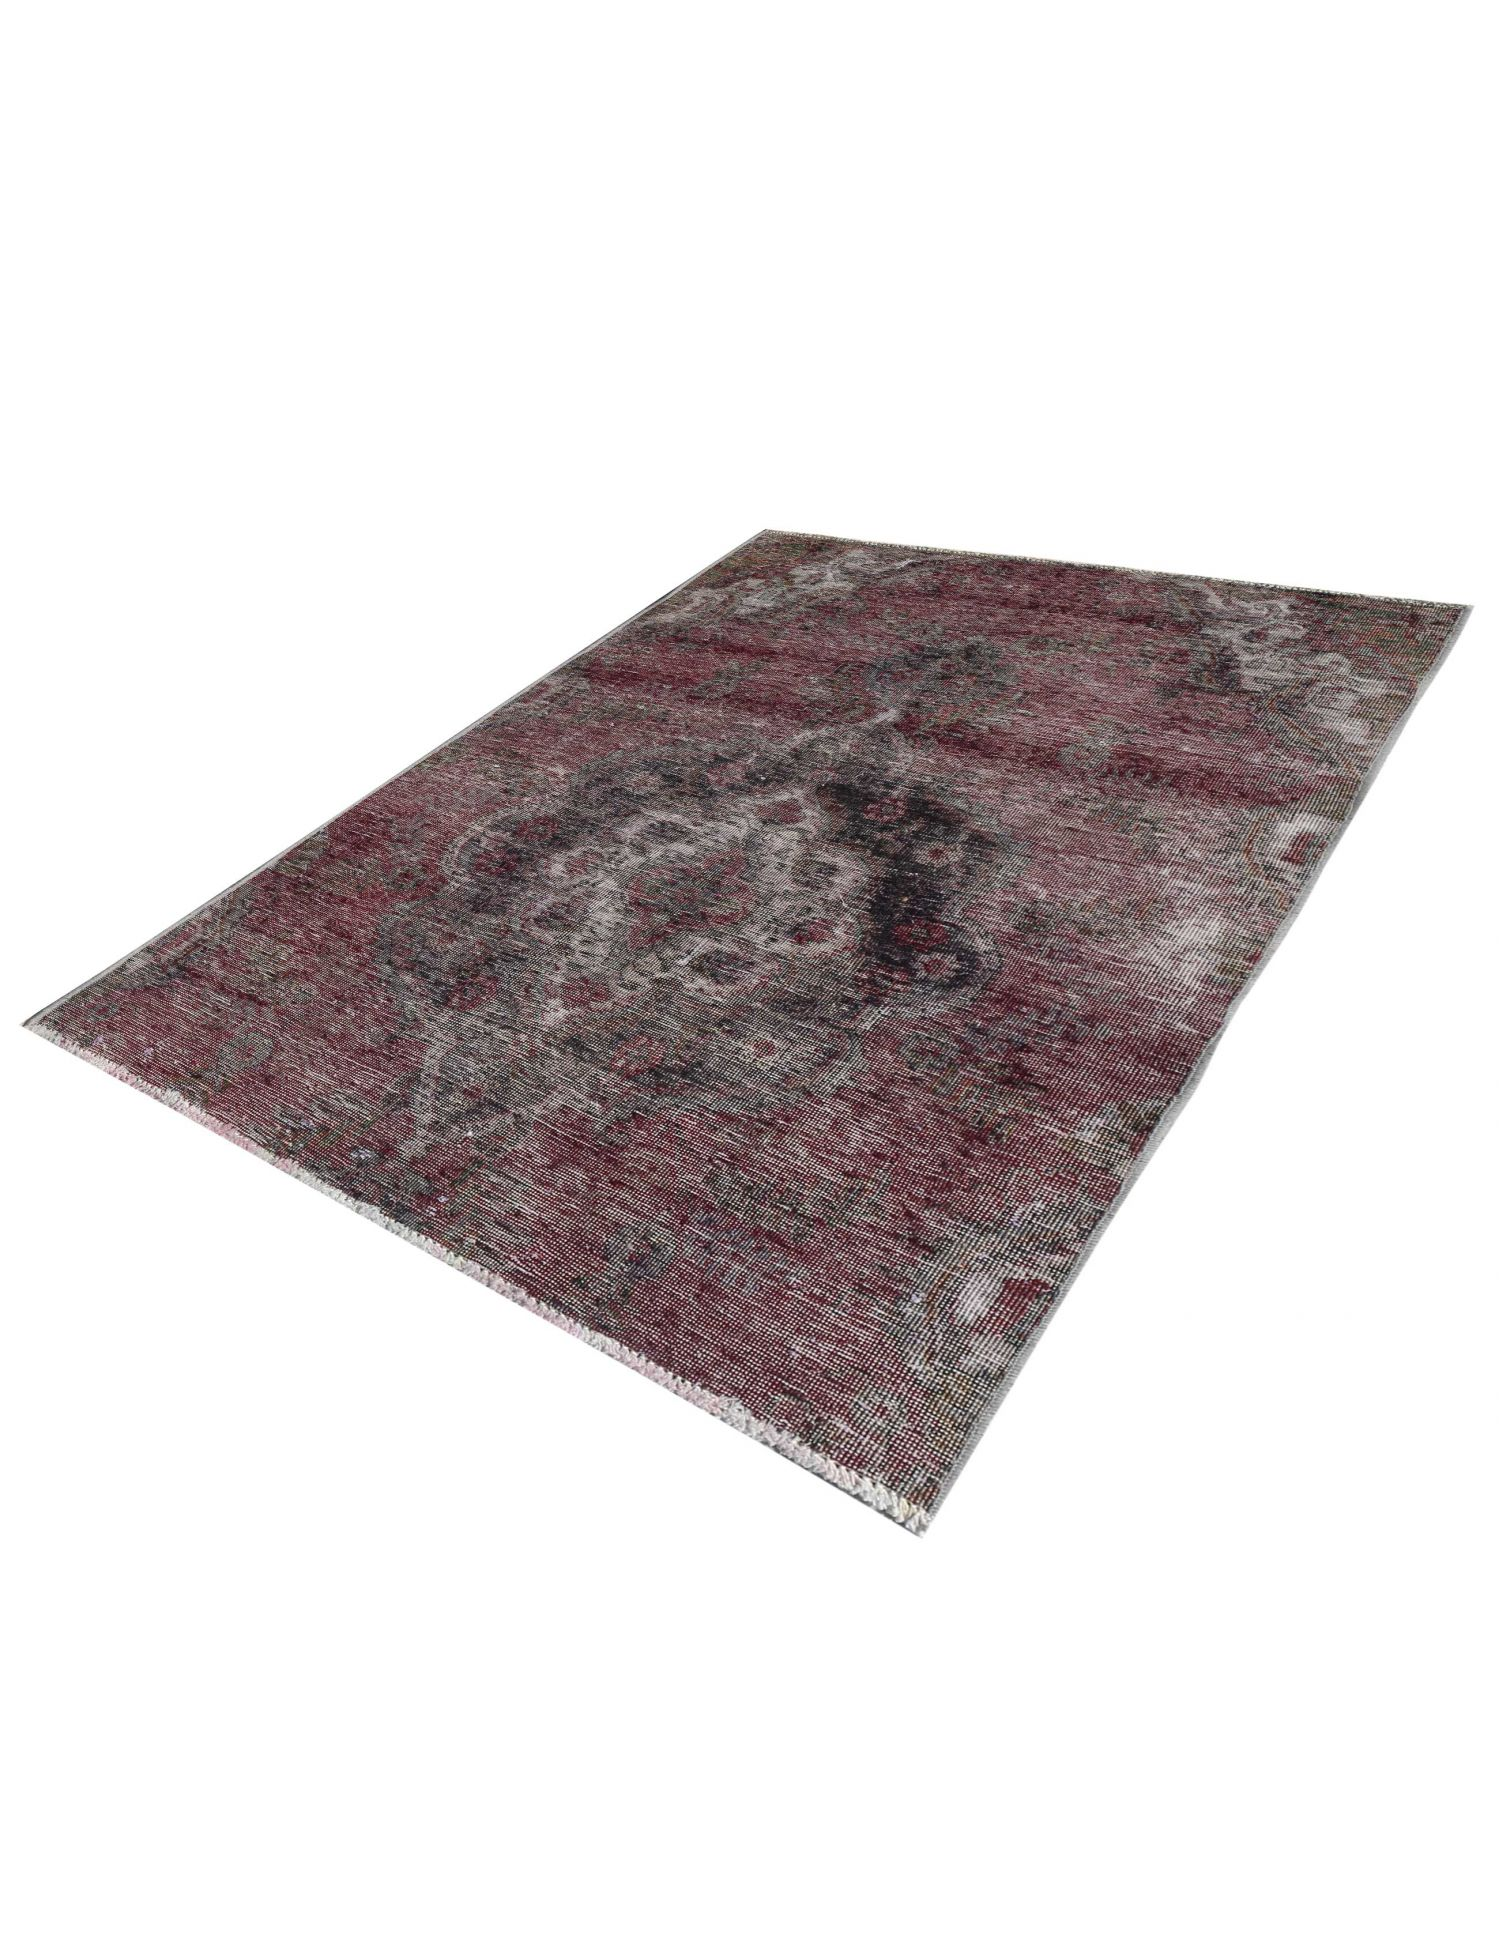 Vintage Carpets  purple <br/>160 x 124 cm